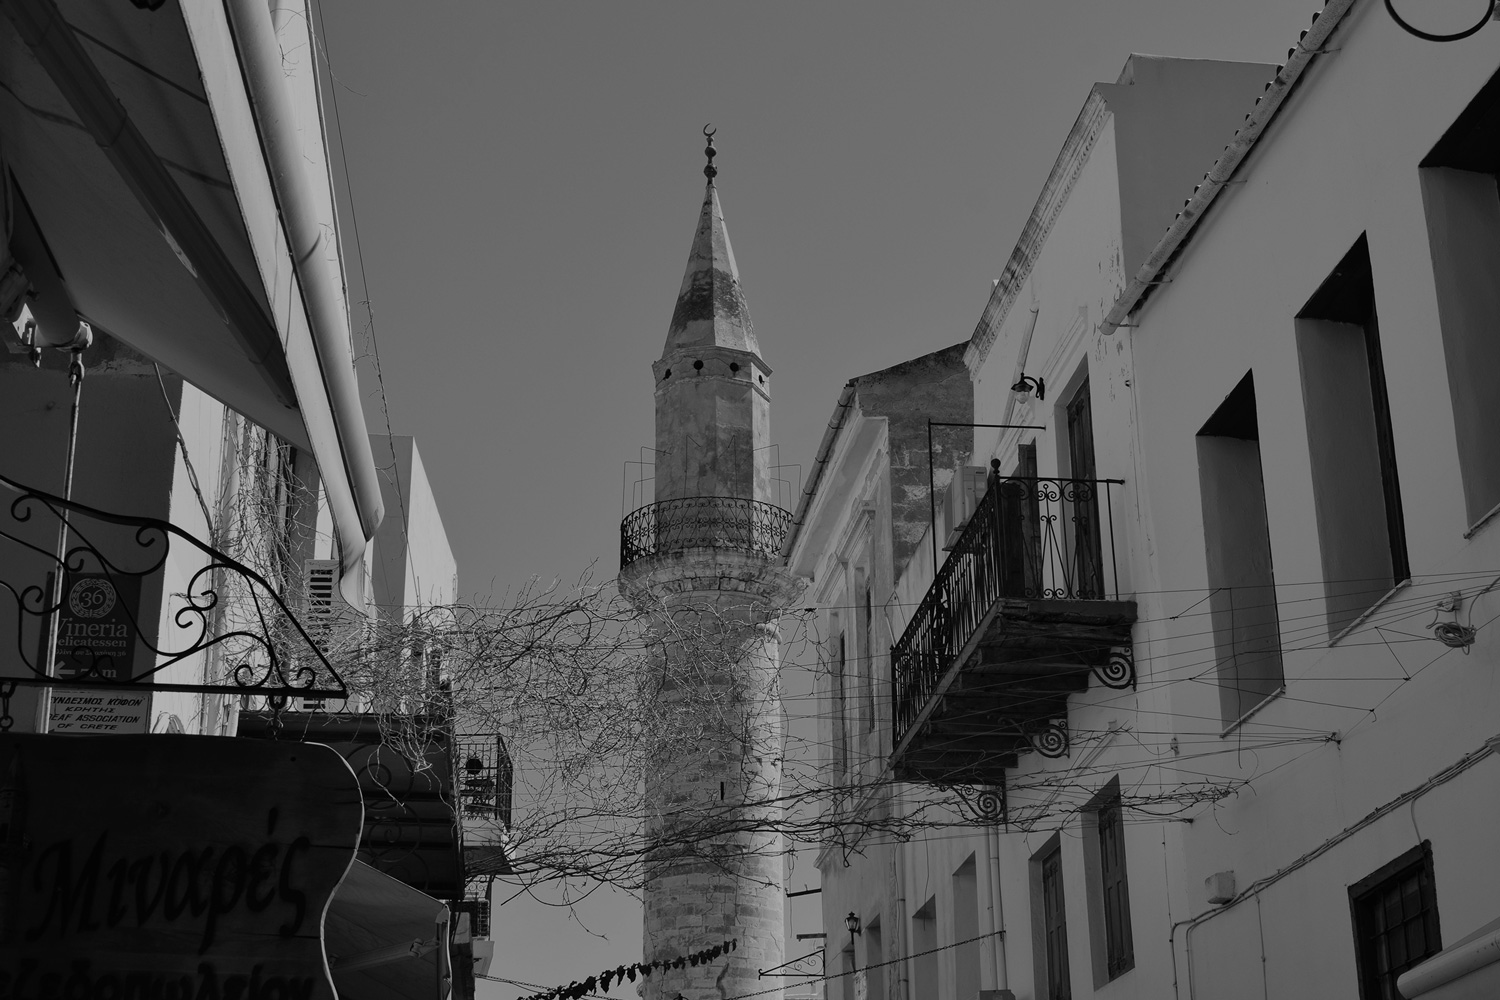 blakc and white view of the minaret